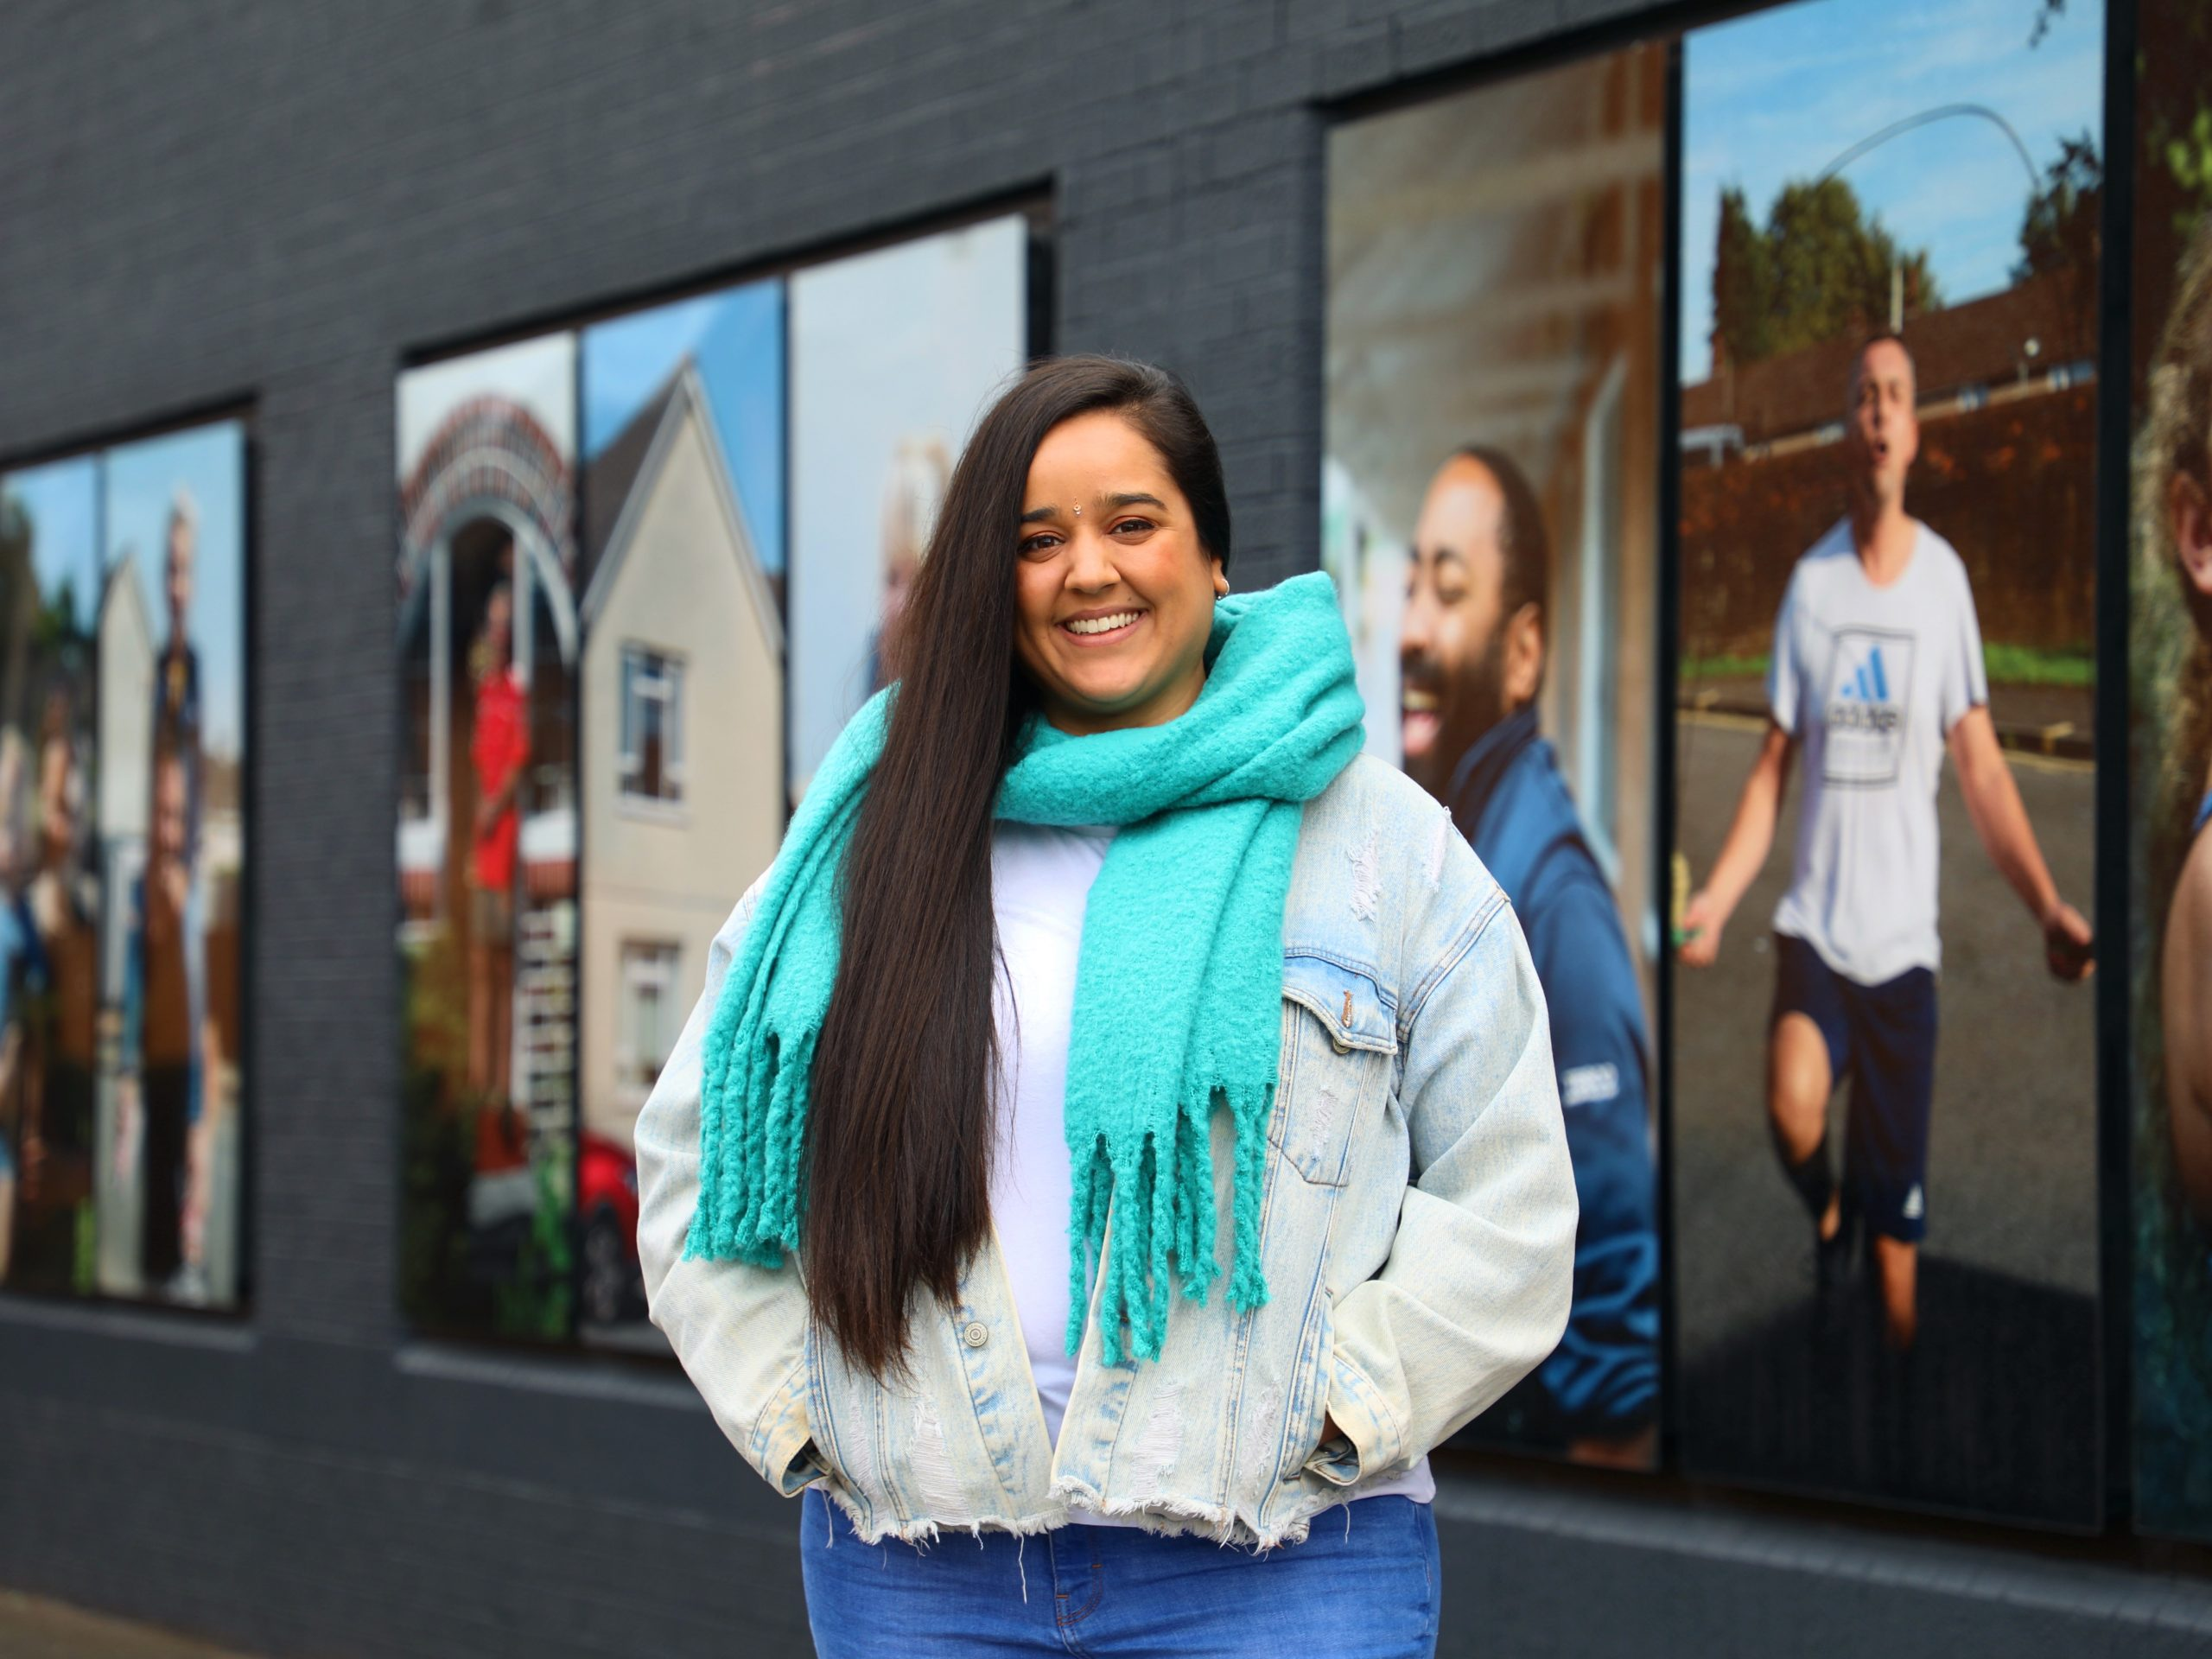 Sita stands in front of an outdoor exhibition of photographs.